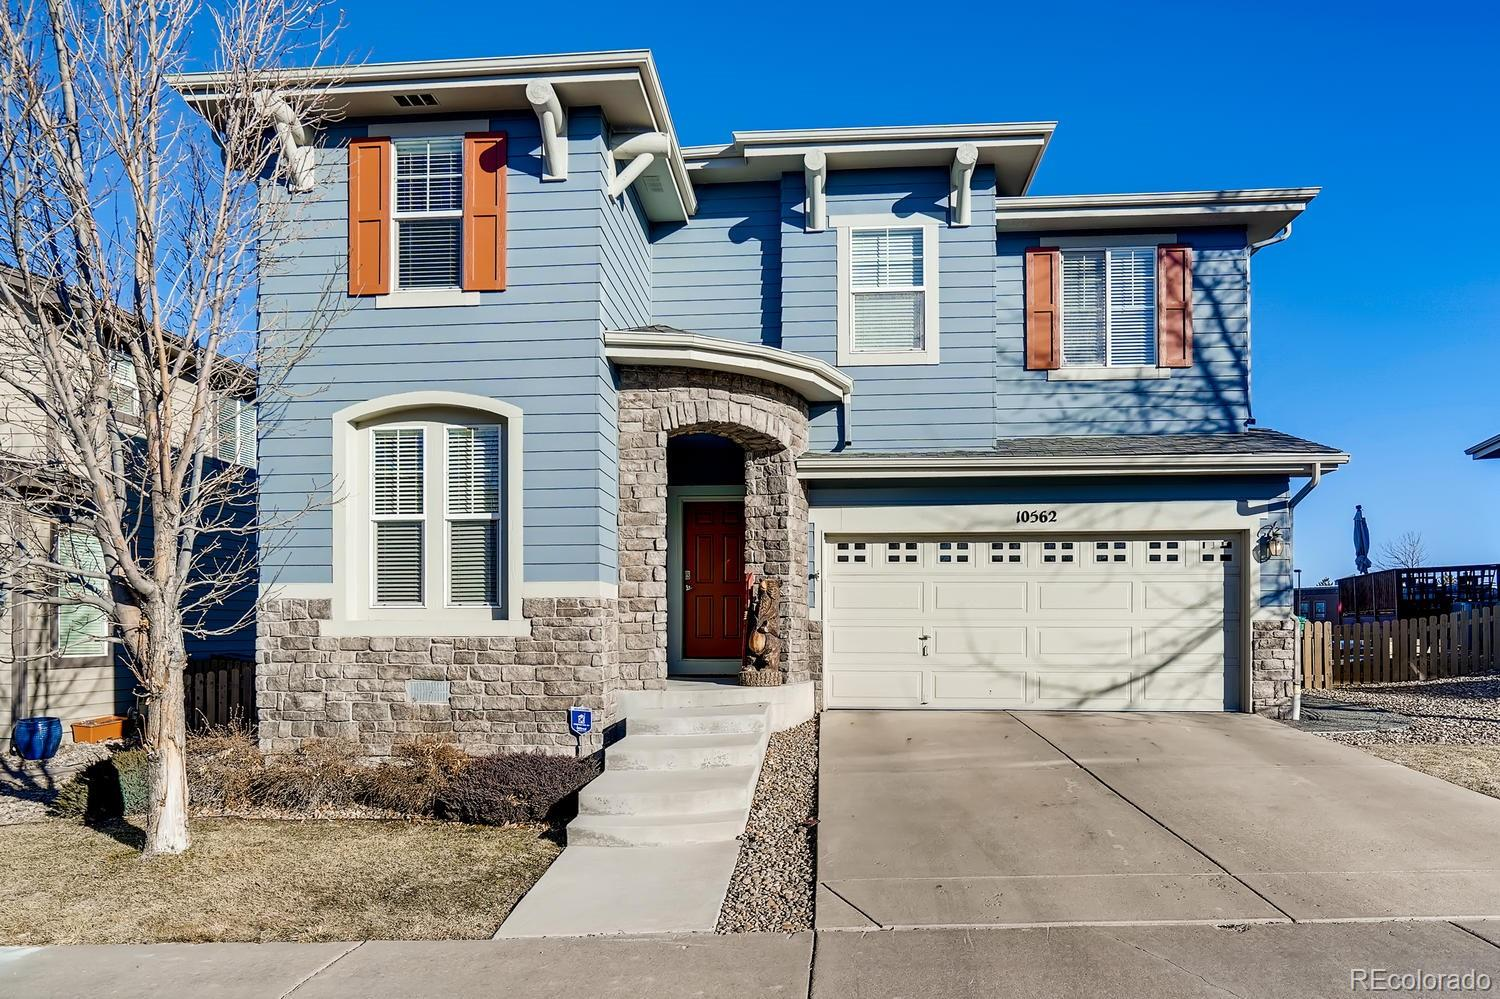 MLS# 8227370 - 1 - 10562 Atwood Circle, Highlands Ranch, CO 80130